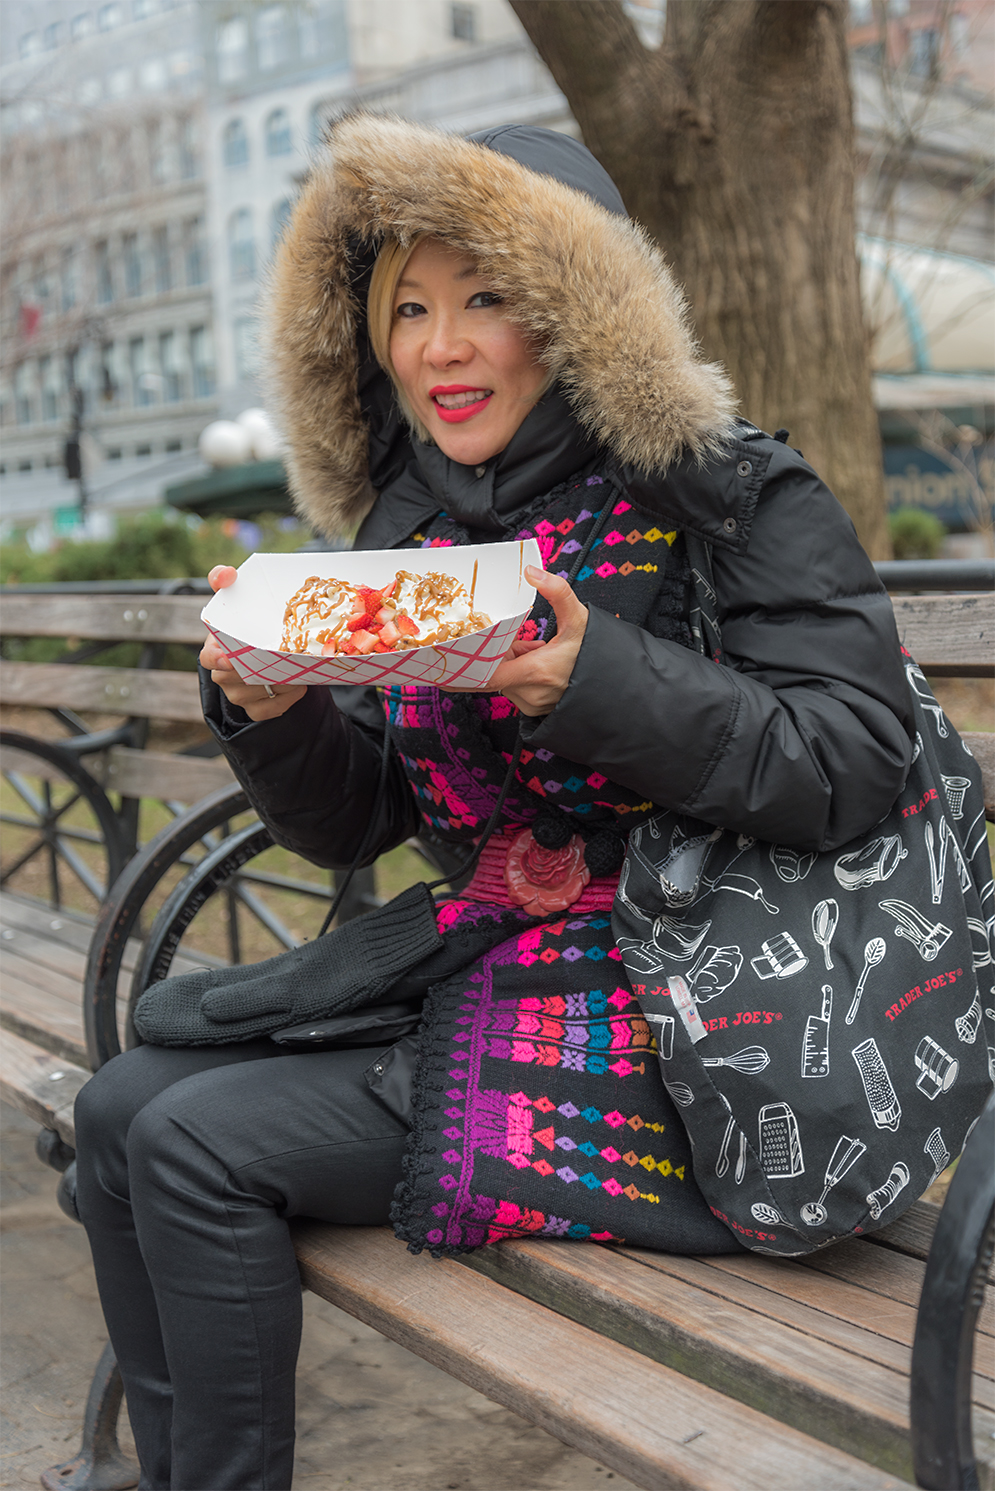 ROCK MAMA NYC LIFESTYLE BLOG - craving waffles